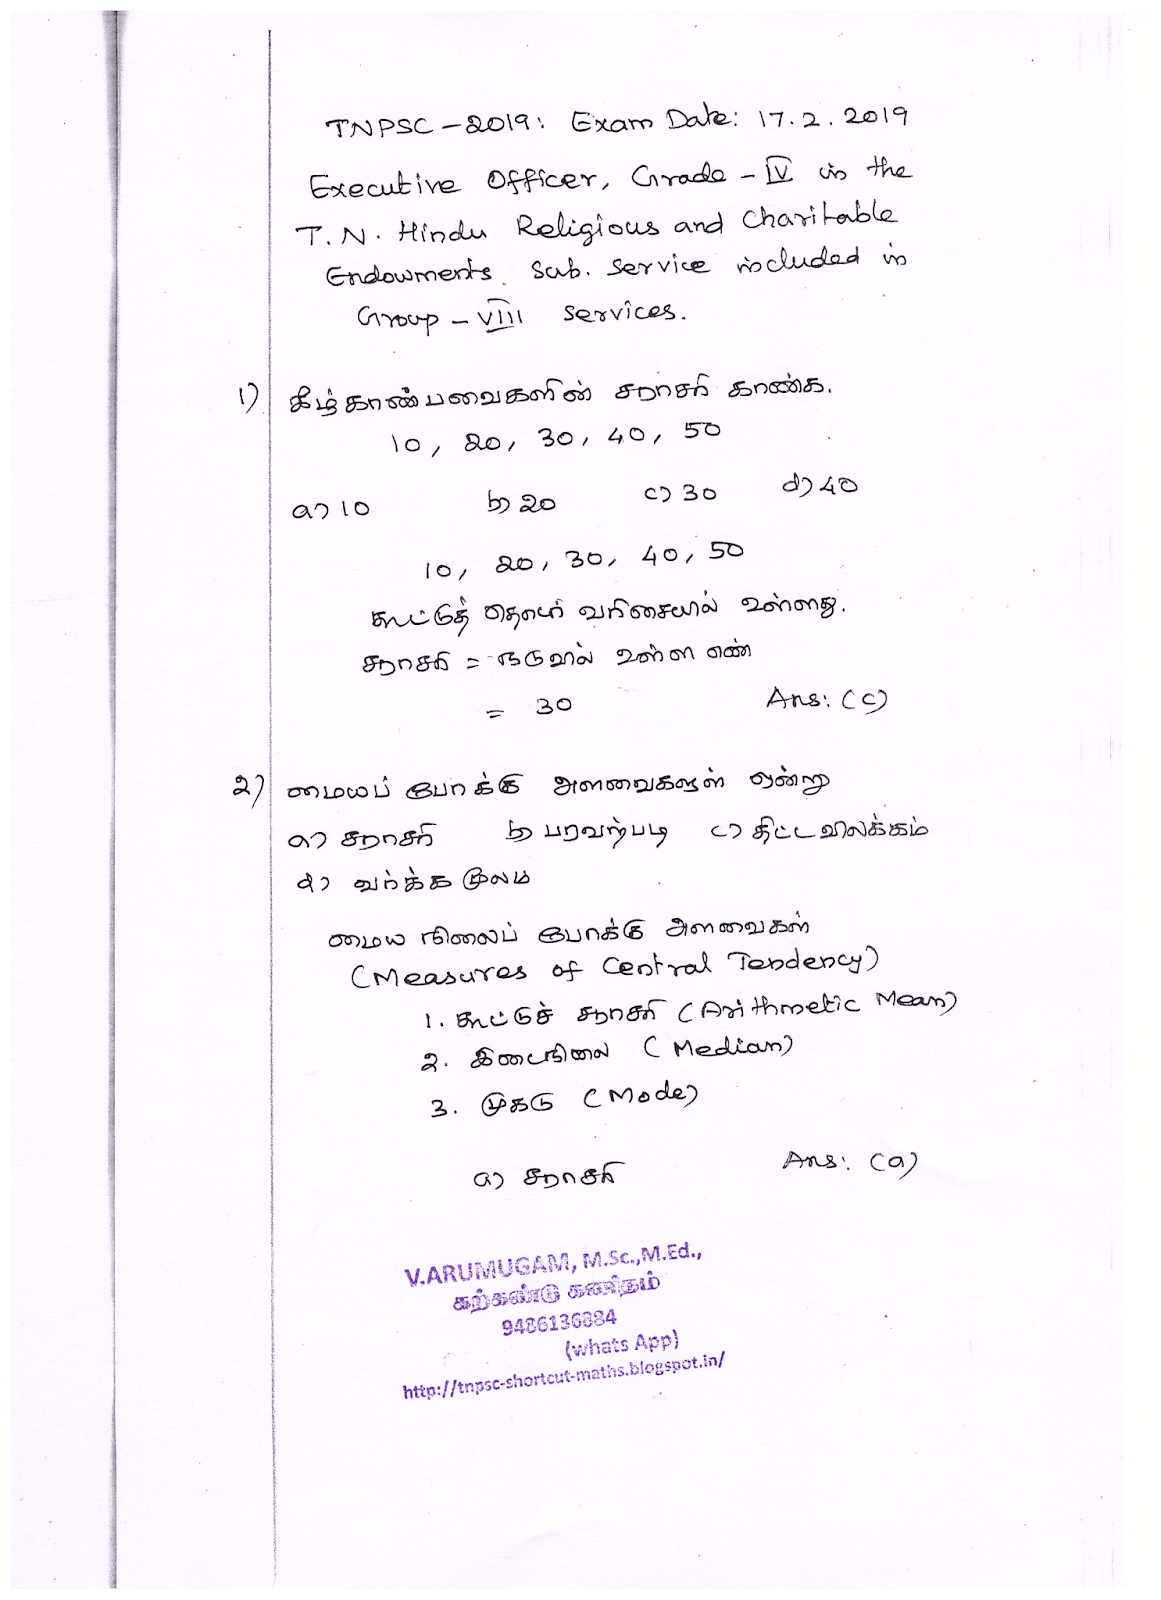 TNPSC – 2019 - Executive Officer, Grade-IV in the Tamil Nadu Hindu Religious and Charitable Endowments Subordinate Service included in Group-VIII Services EXAM - EXAM DATE: 17.02.2019